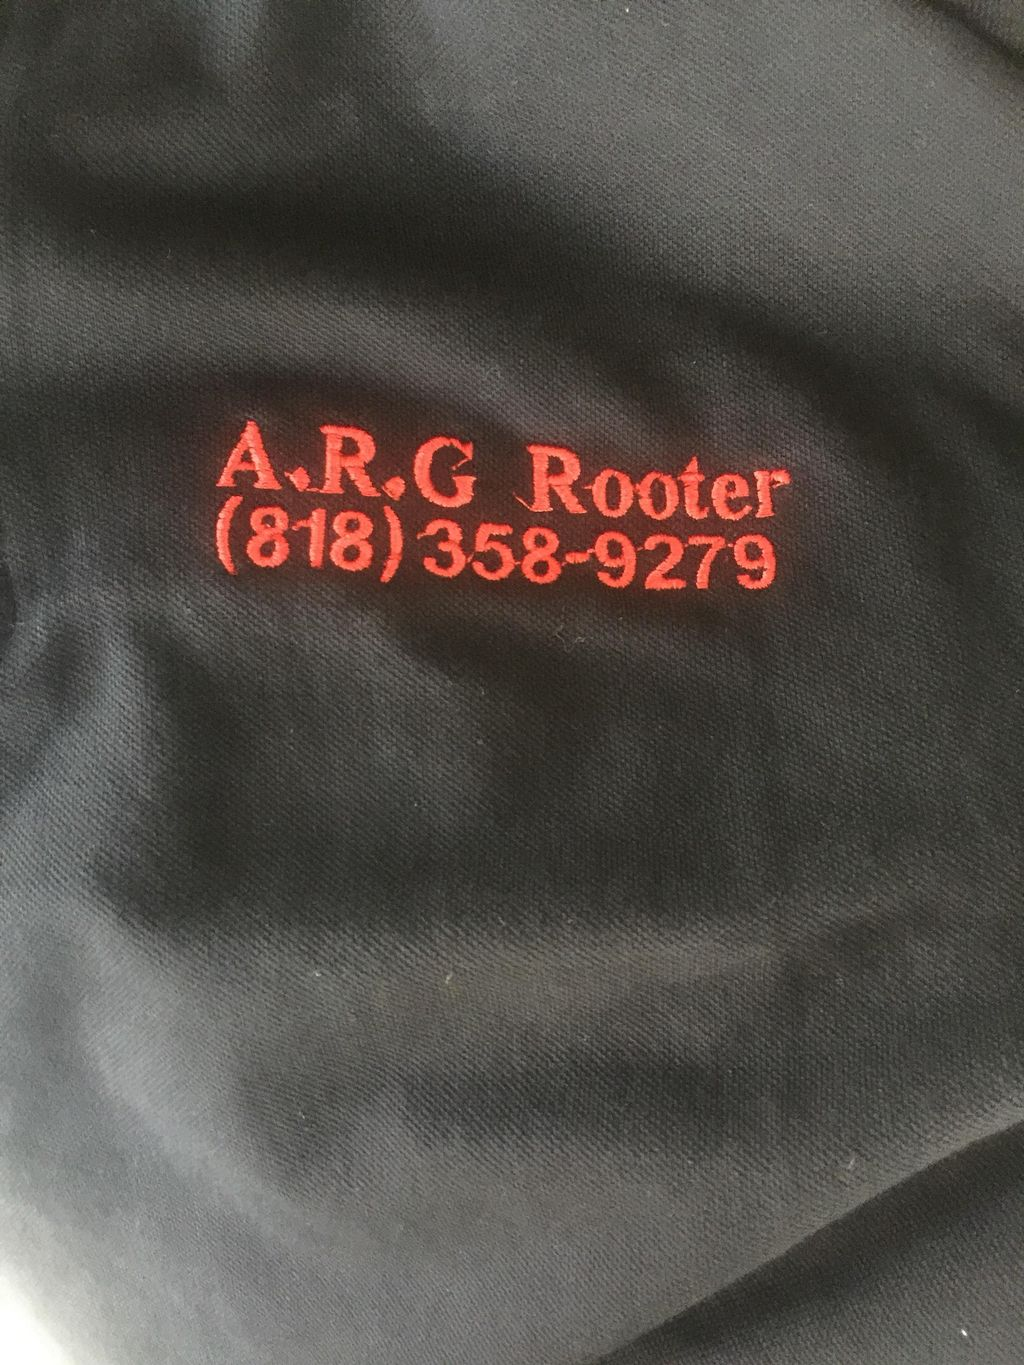 Andrew G.  Rooter Services